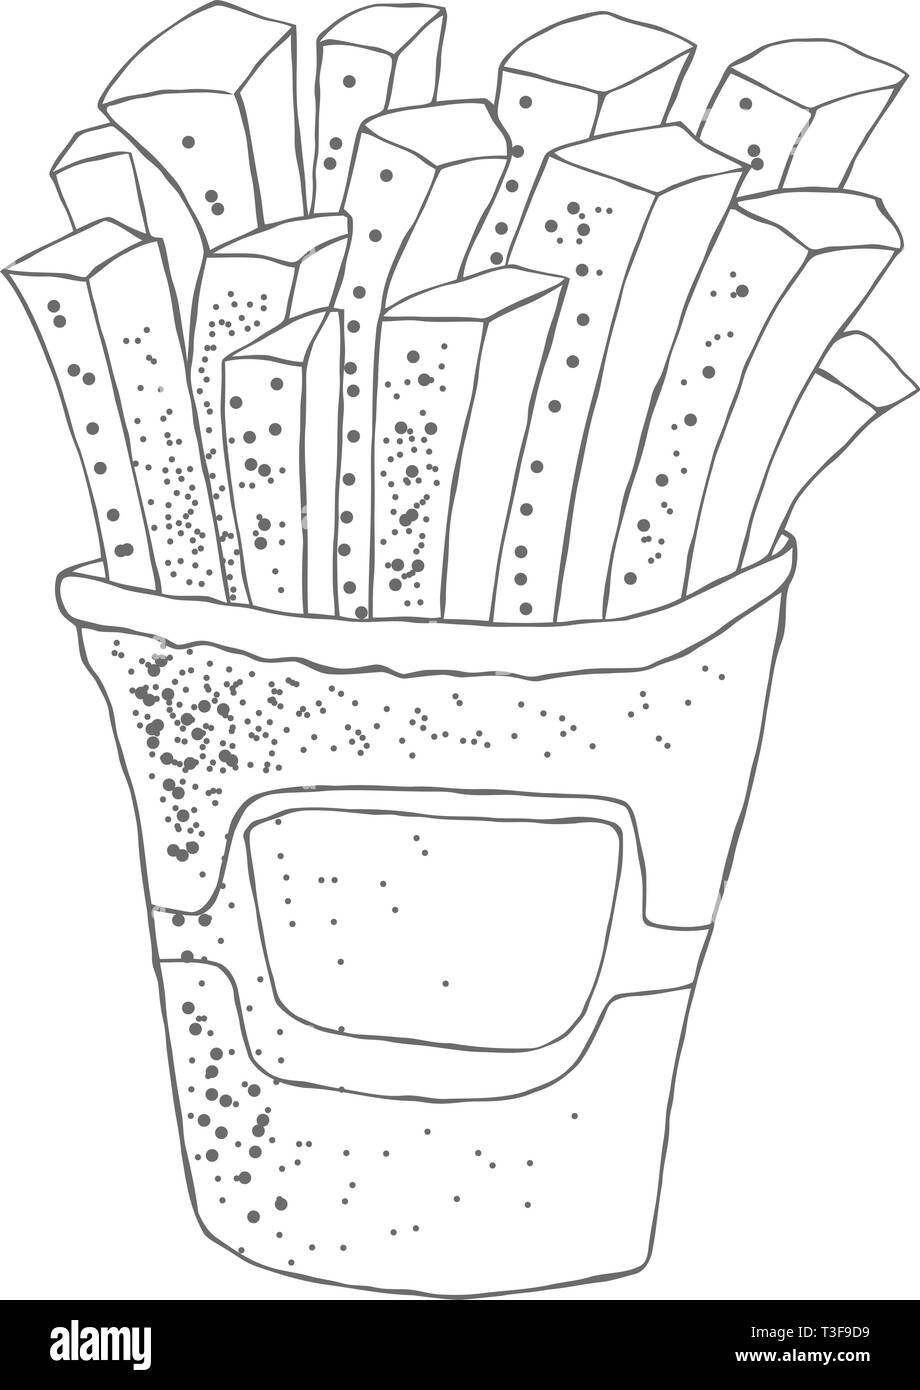 Illustration of hand drawn french fries potato. Sketched fast food. - Stock Vector